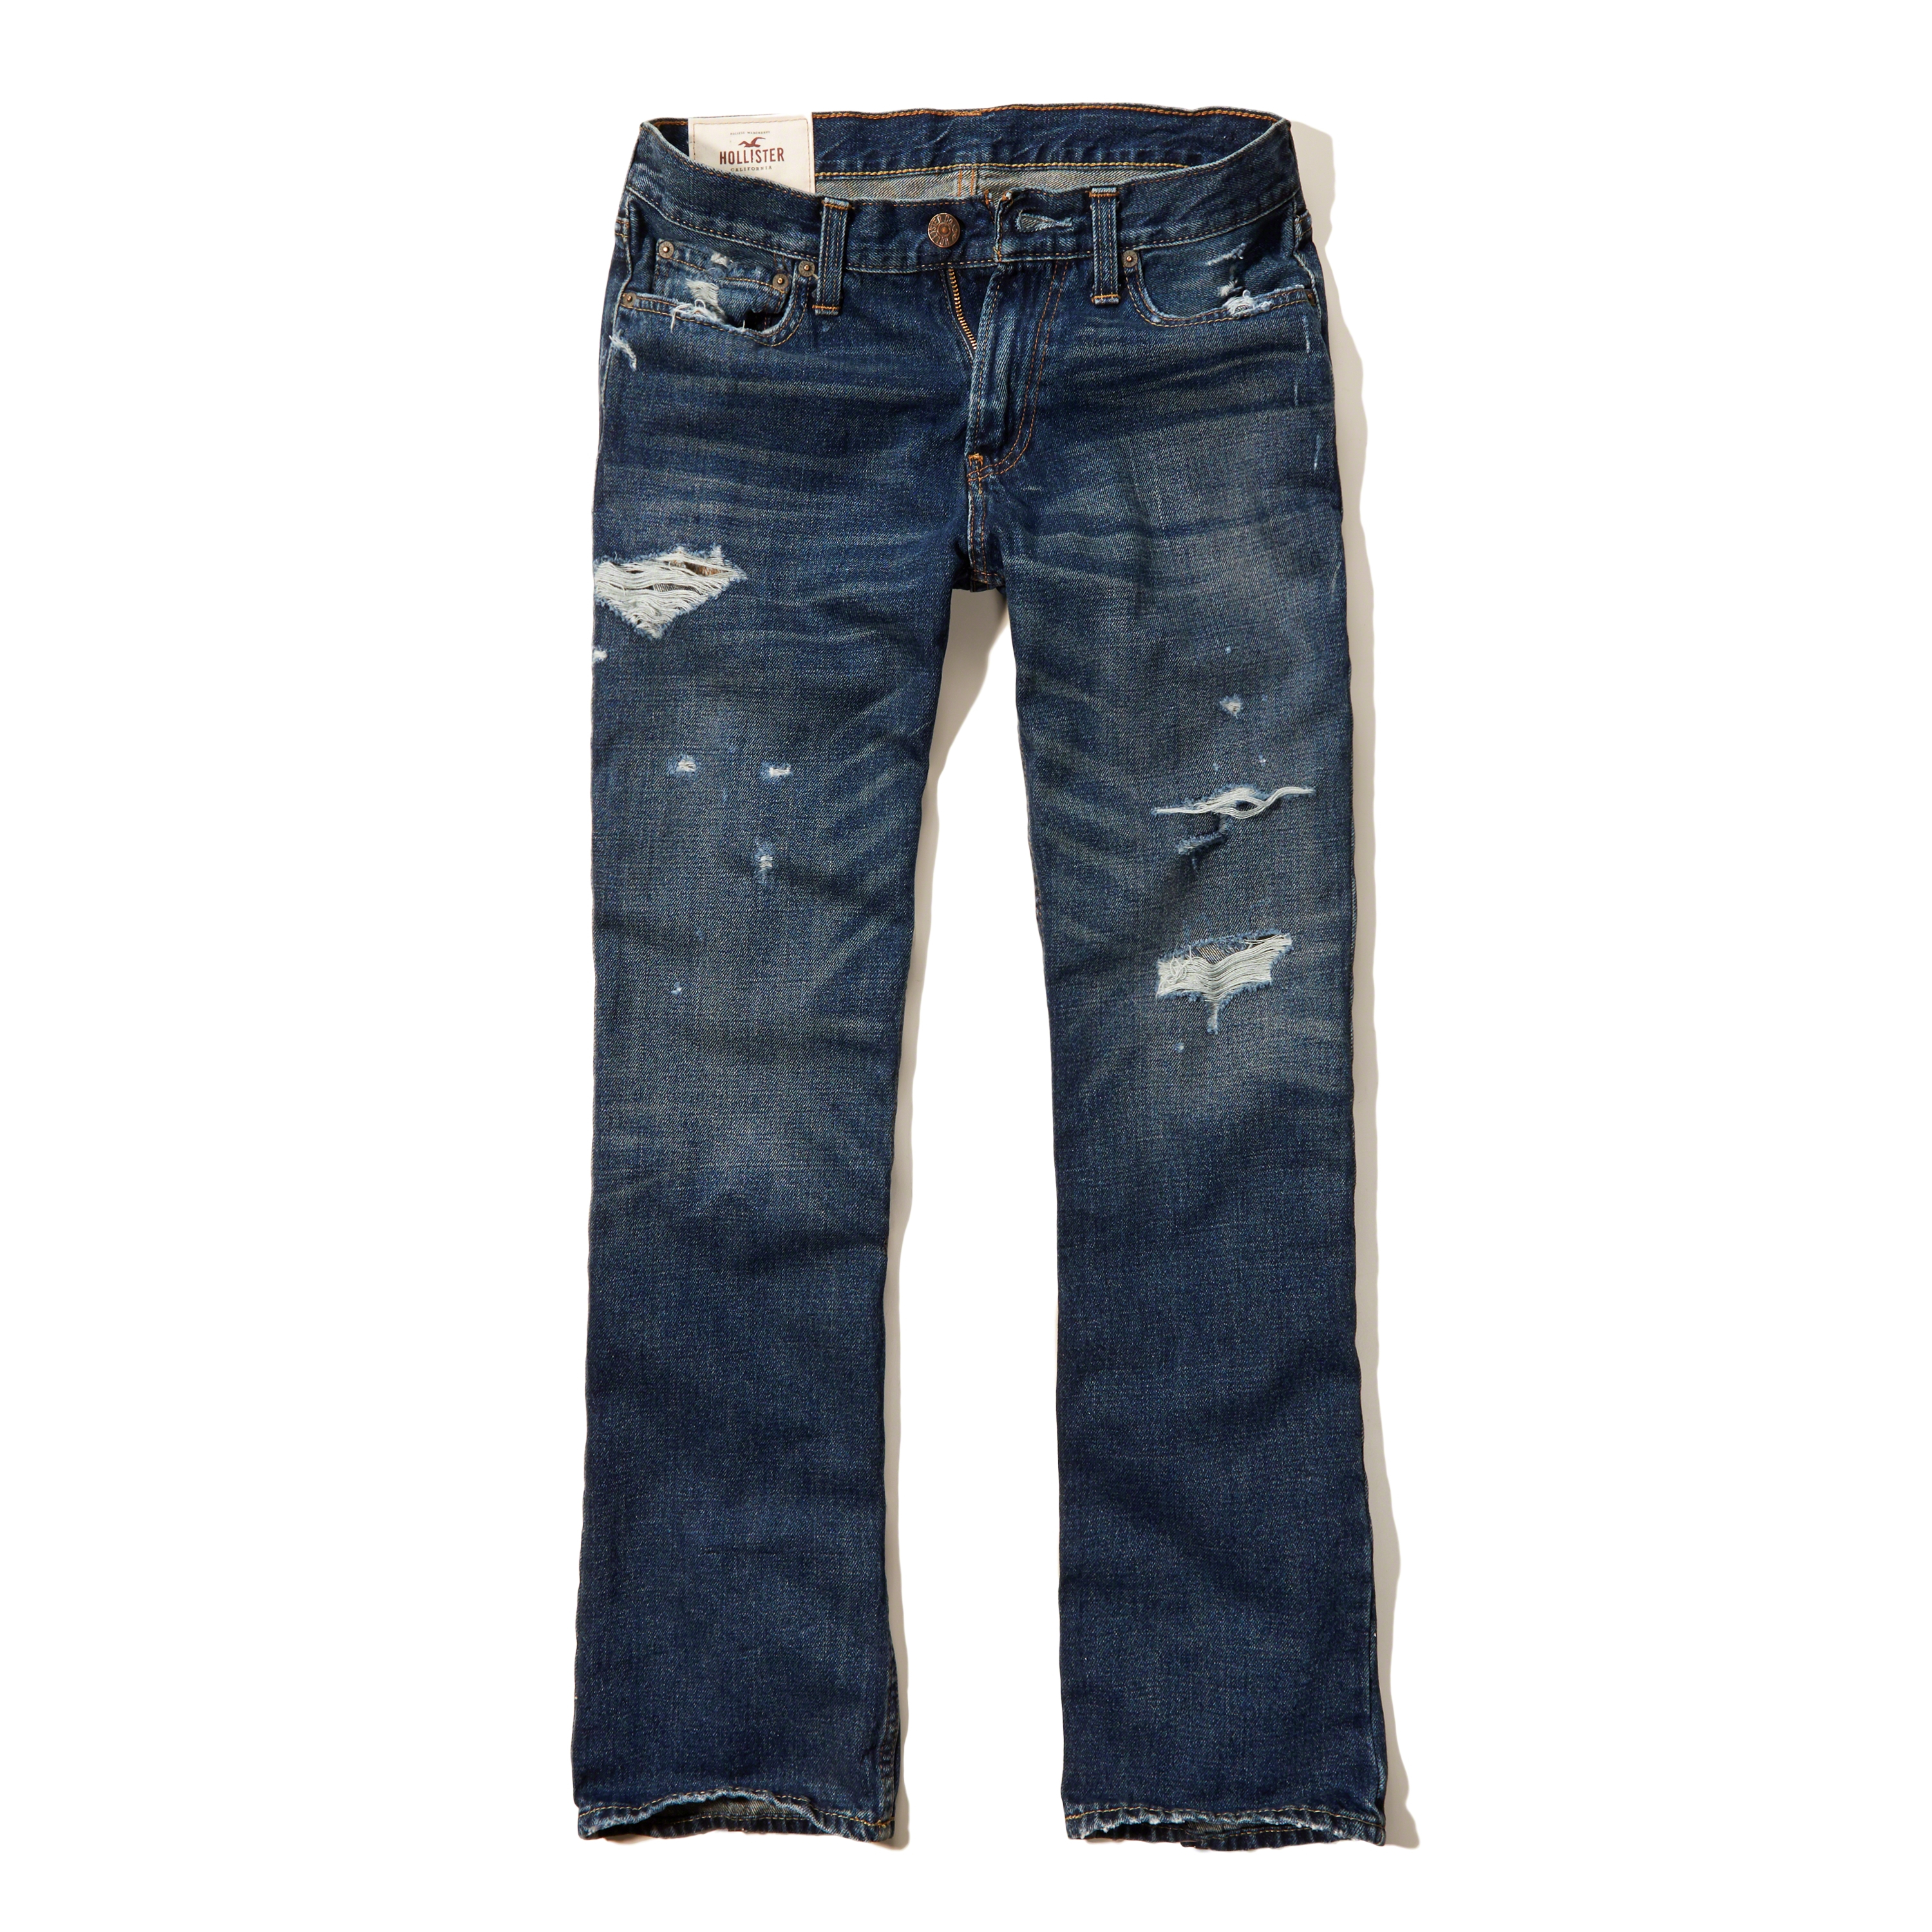 Lyst - Hollister Boot Jeans in Blue for Men